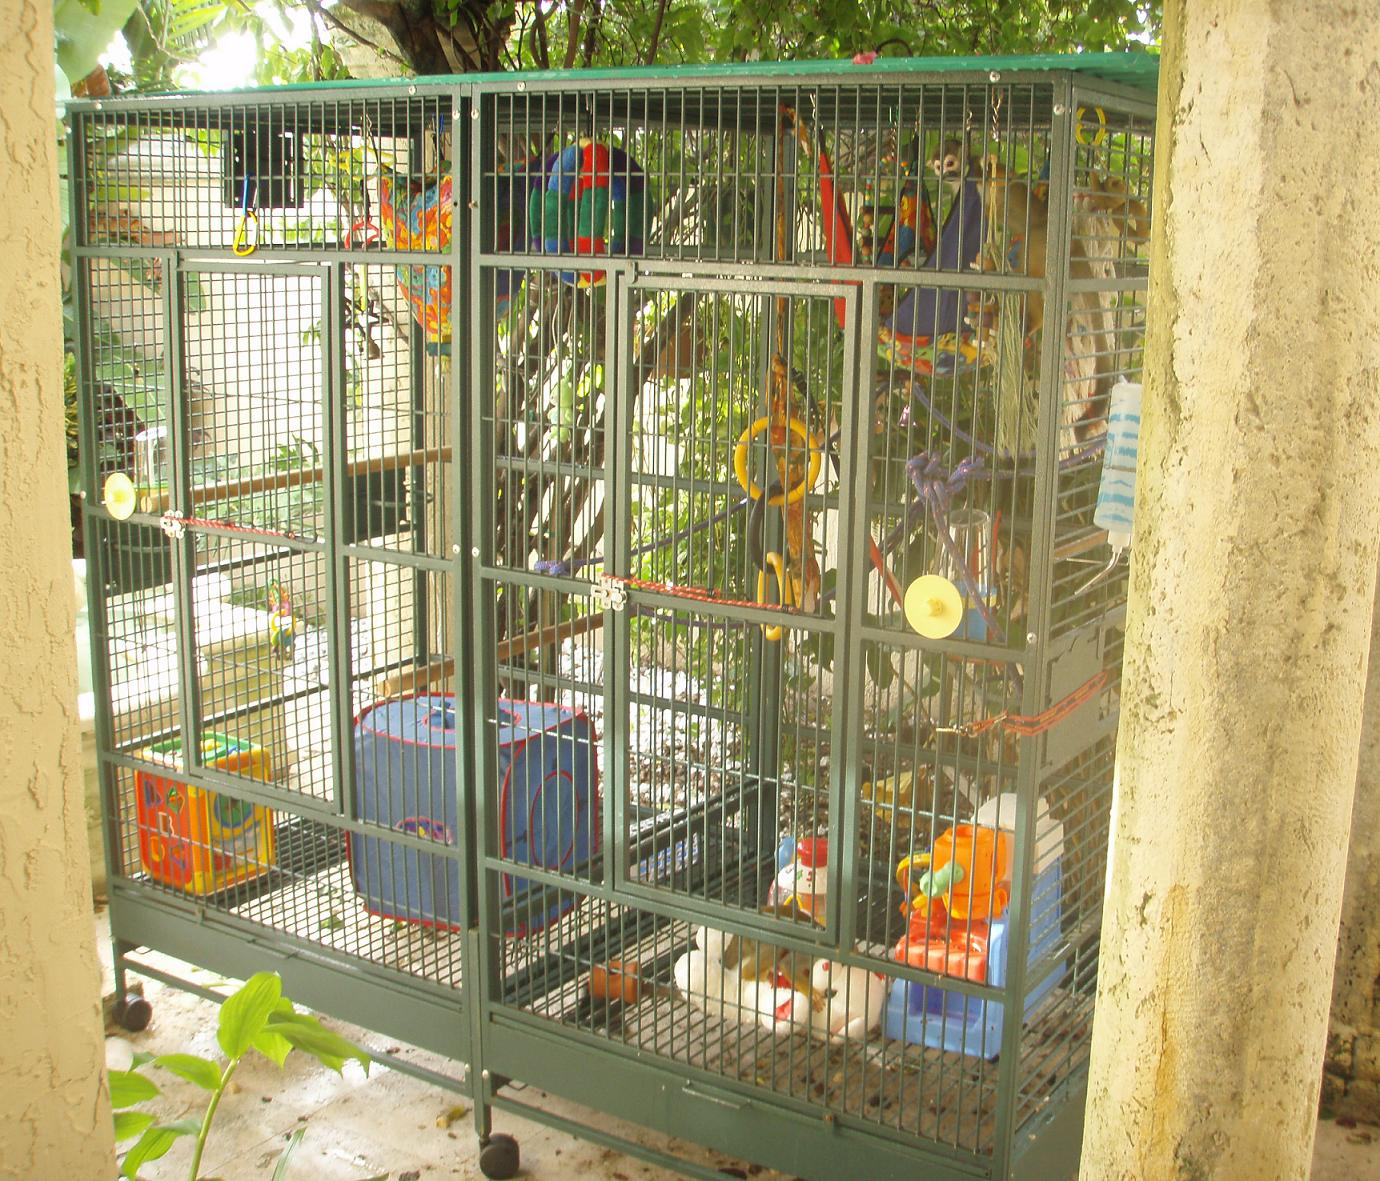 Kinkajou Cage Ideas Images & Pictures - Becuo